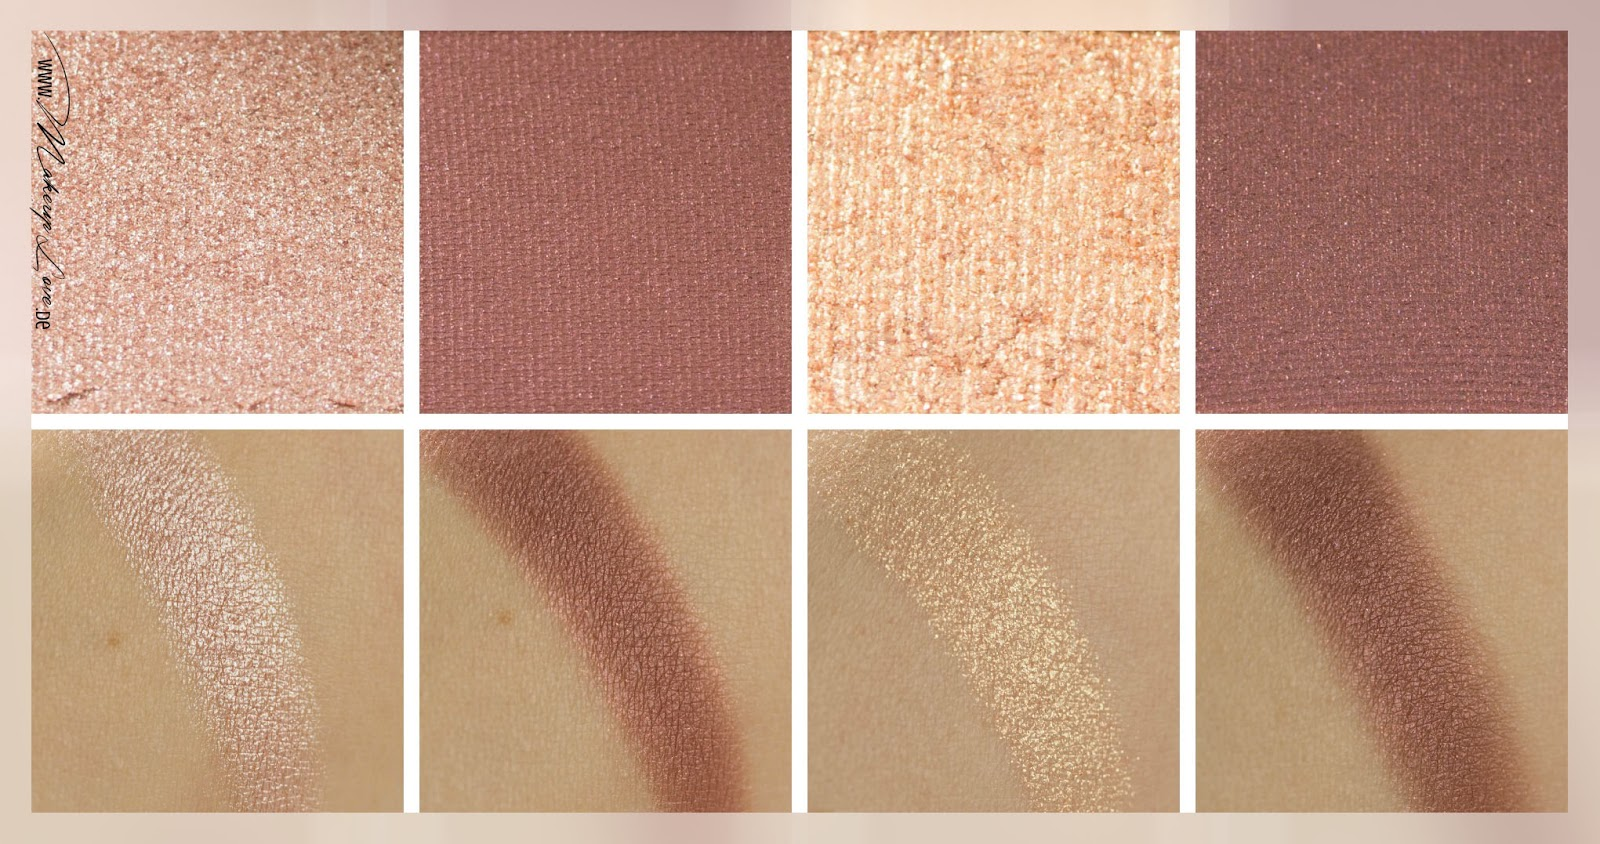 Charlotte Tilbury Luxury Palette 'The Vintage Vamp' Swatches